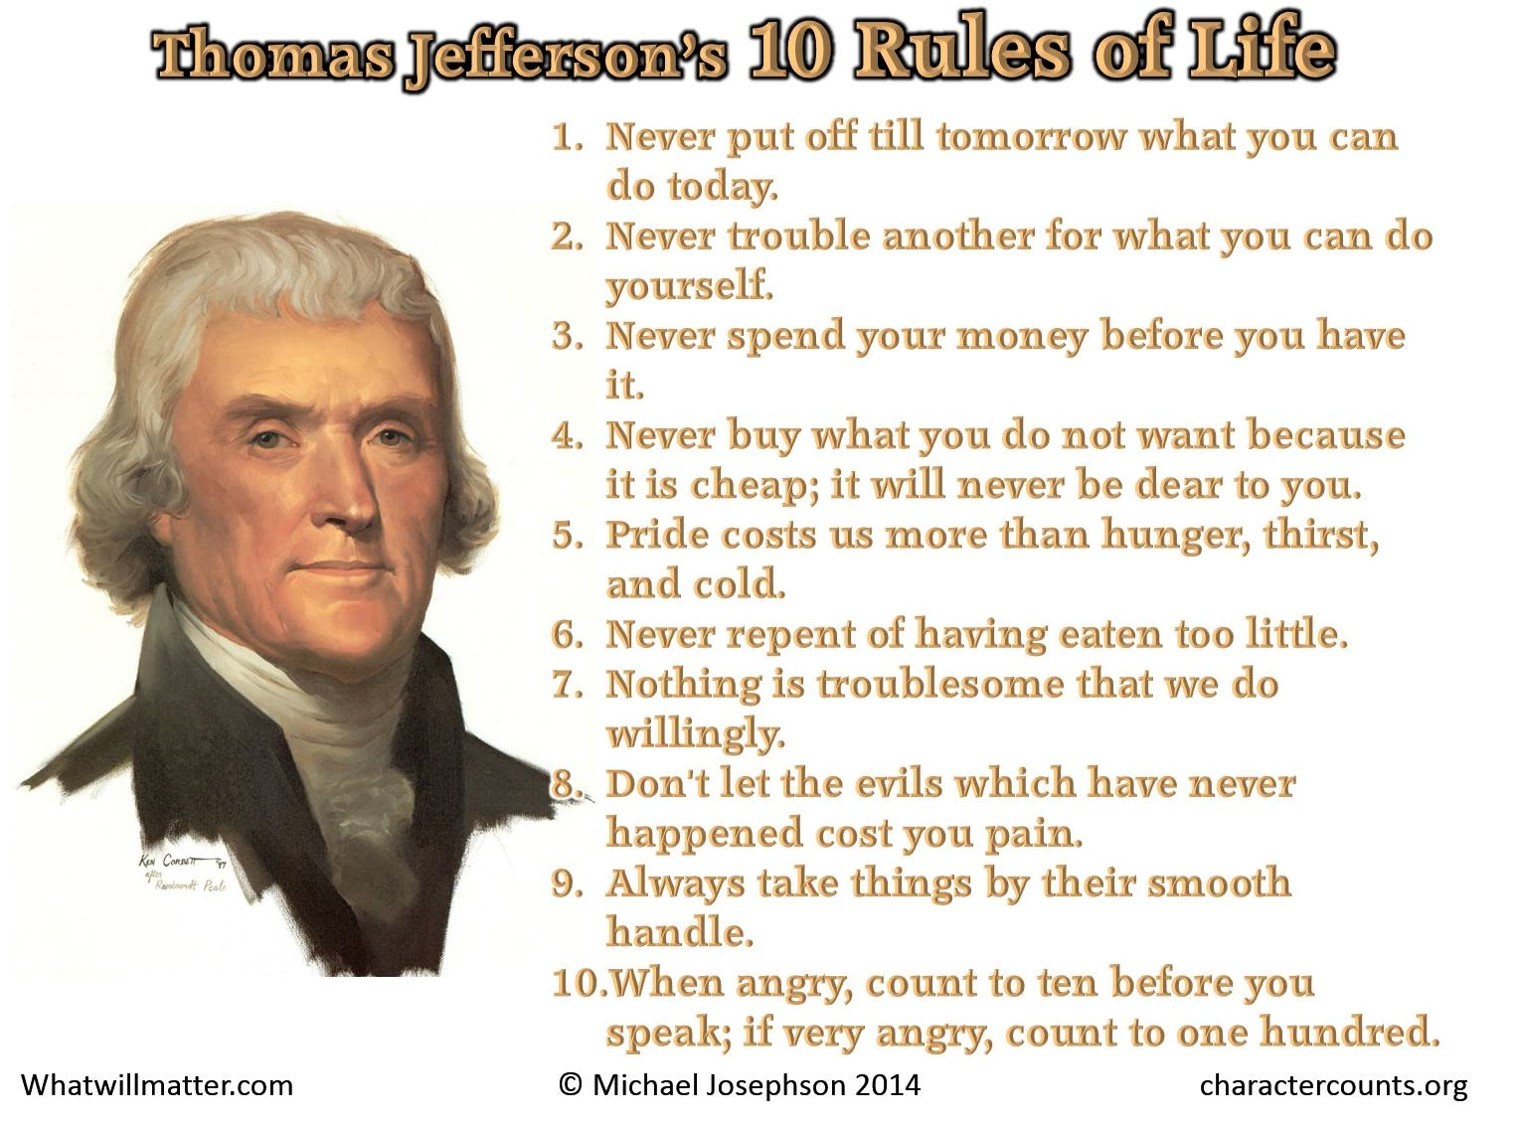 an analysis of thomas jeffersons views on education The presidency of thomas jefferson thomas jefferson is often considered a great president keep in mind, that analysis is only mine and can be disputed i the presidency of thomas jefferson education software - educational games - music quiz - arts and crafts for kids - helpful links.